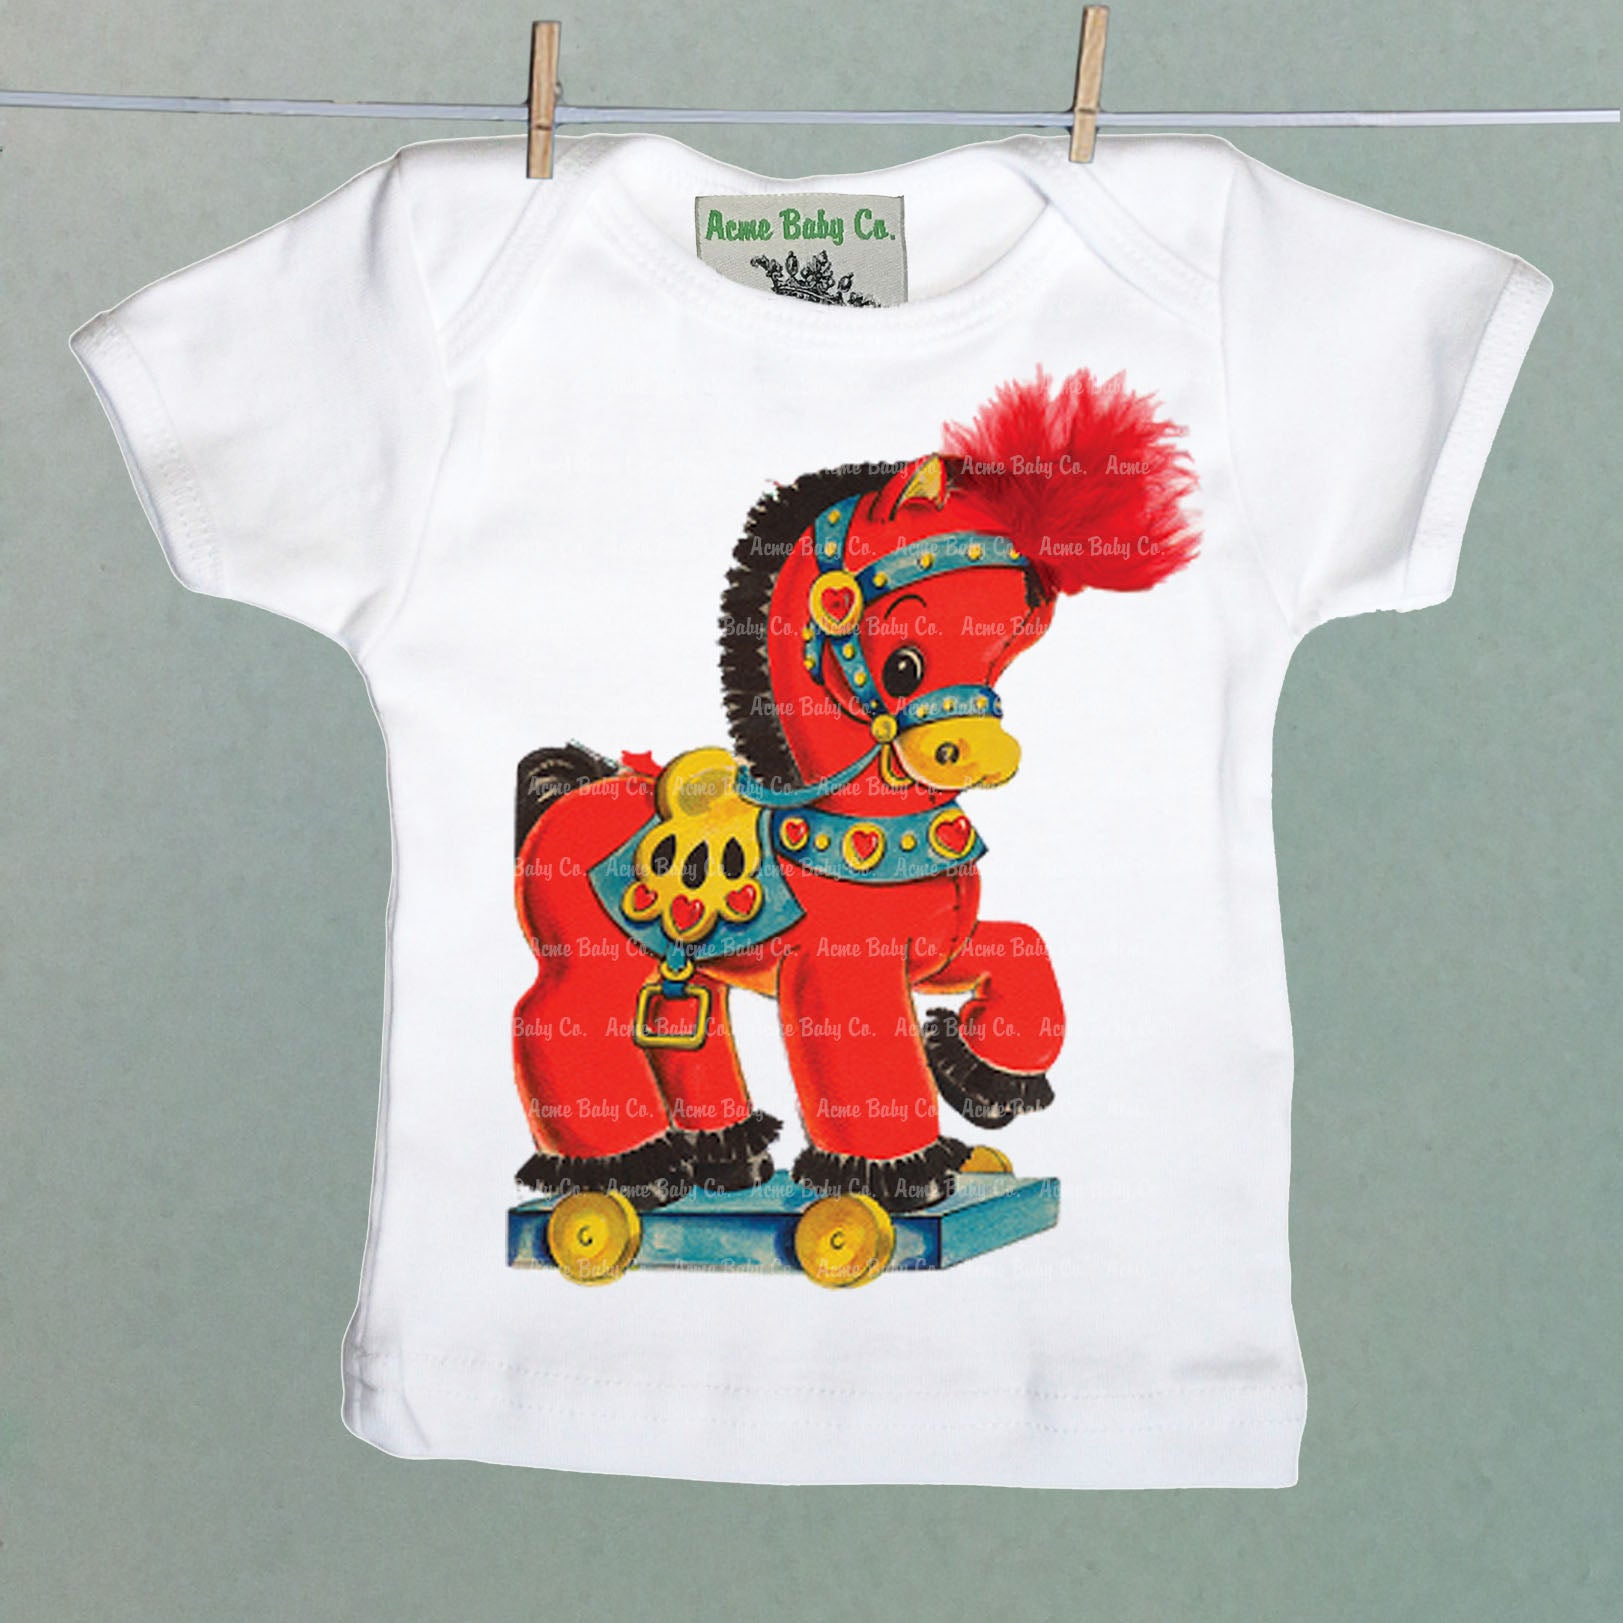 Acme Baby Co. - Vintage Horse Organic Baby Shirt - The Desert Paintbrush